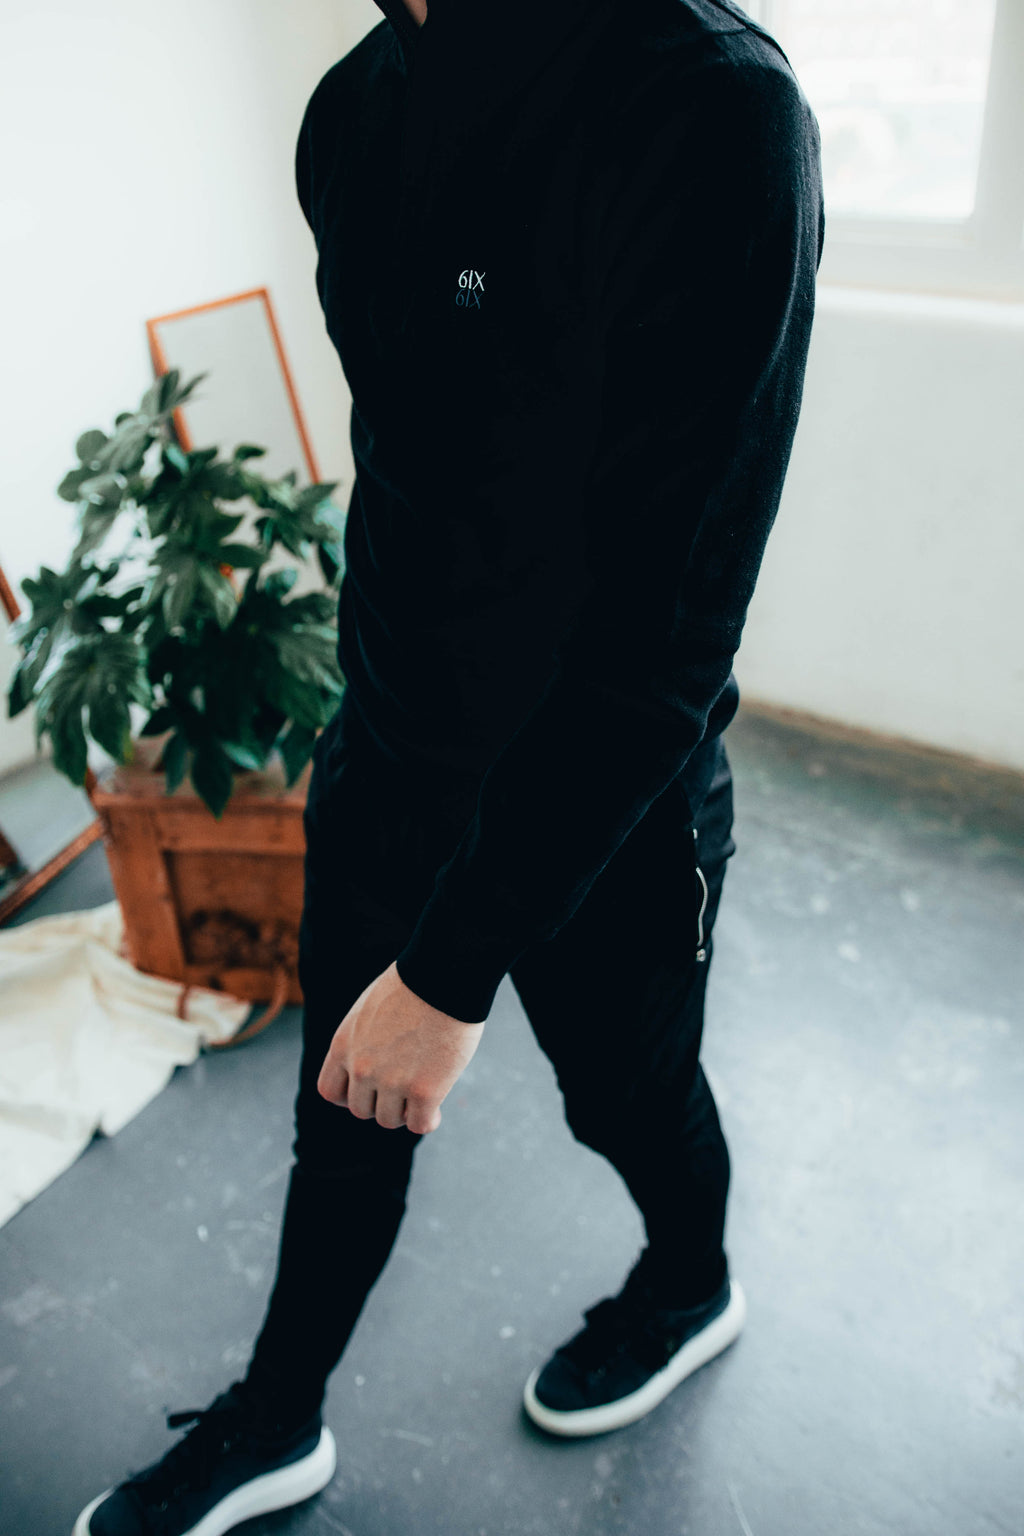 6IX MERINO ZIP NECK JUMPER BLACK FEAT. CONTRAST LOGO - 6IX Collection